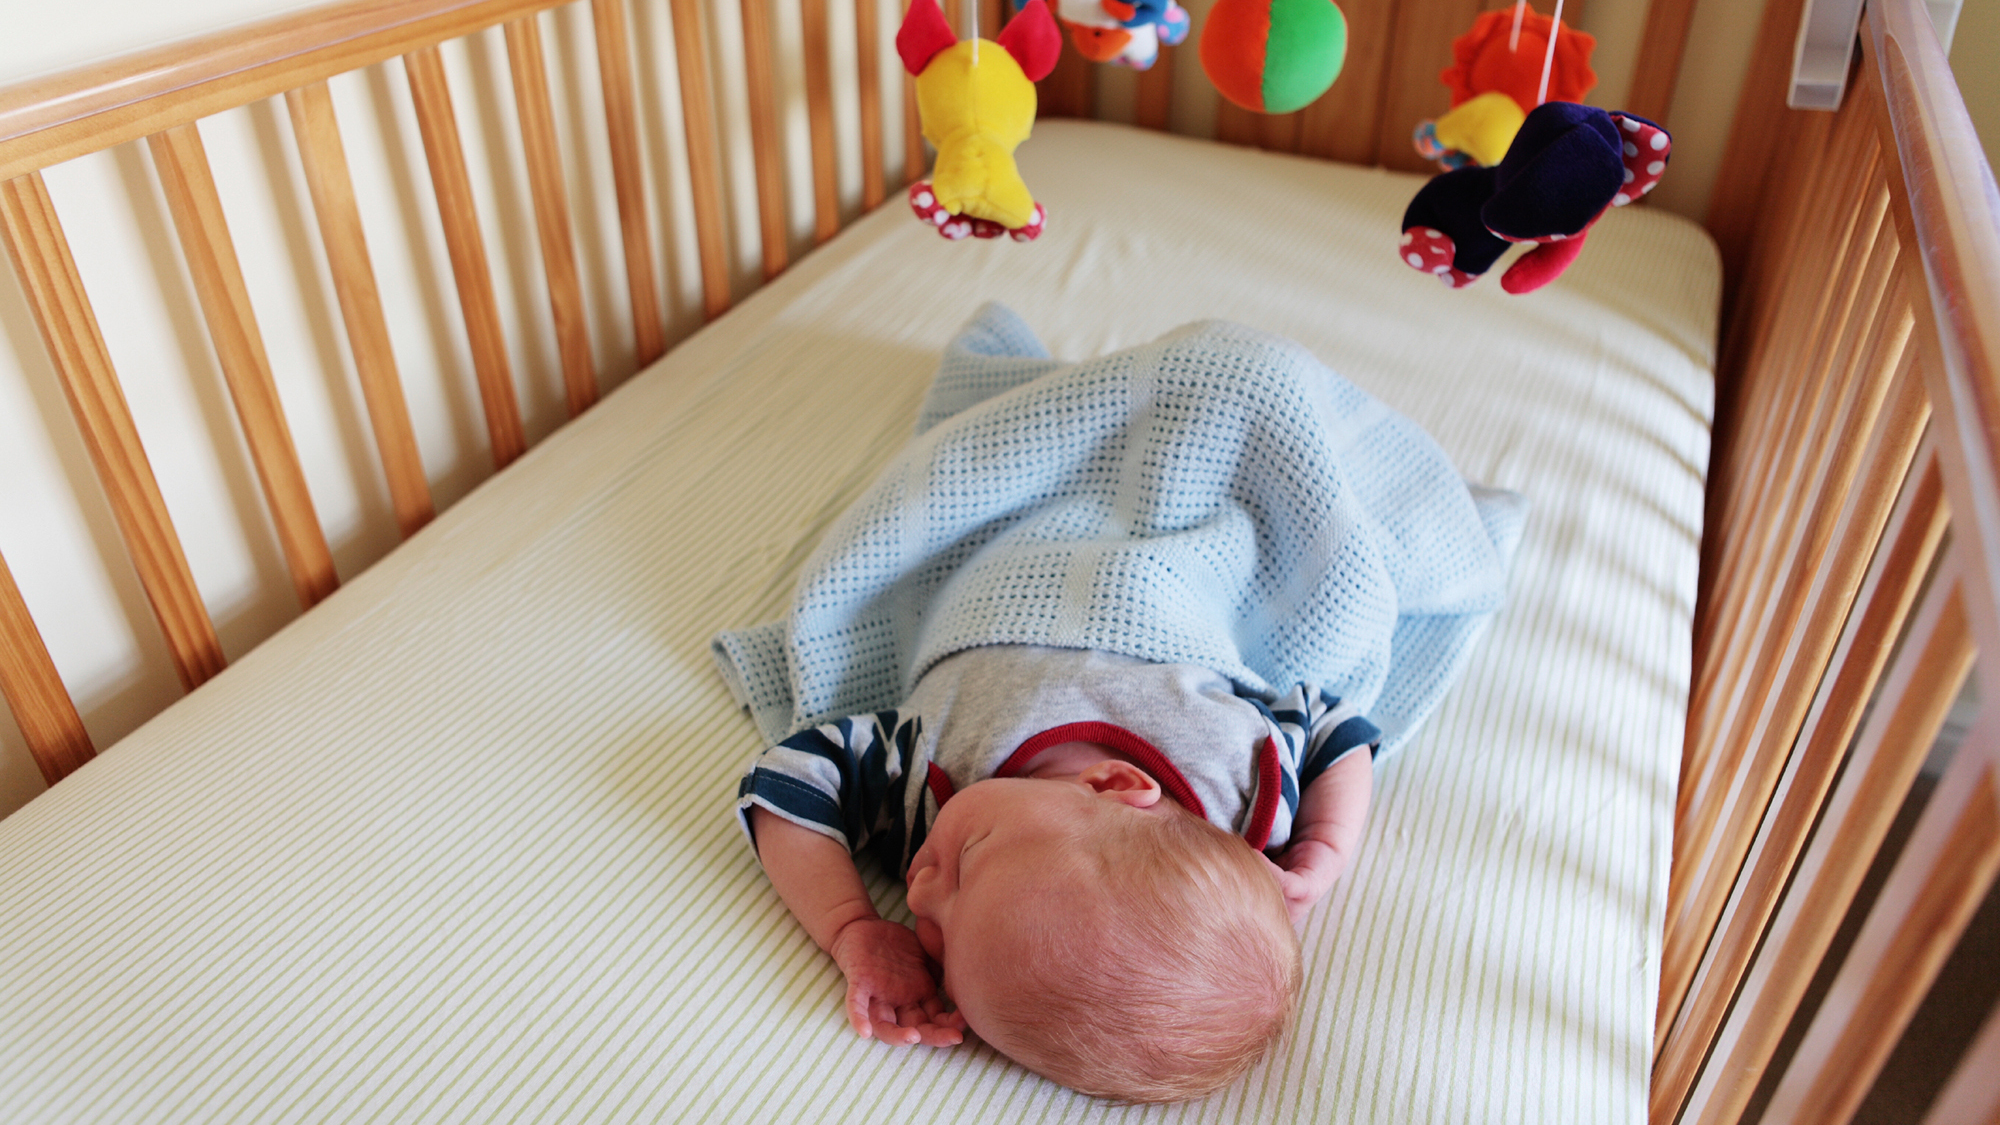 Airwrap Cot Bumper Study Shows Increase In Babies Deaths Due To Crib Bumpers Shots